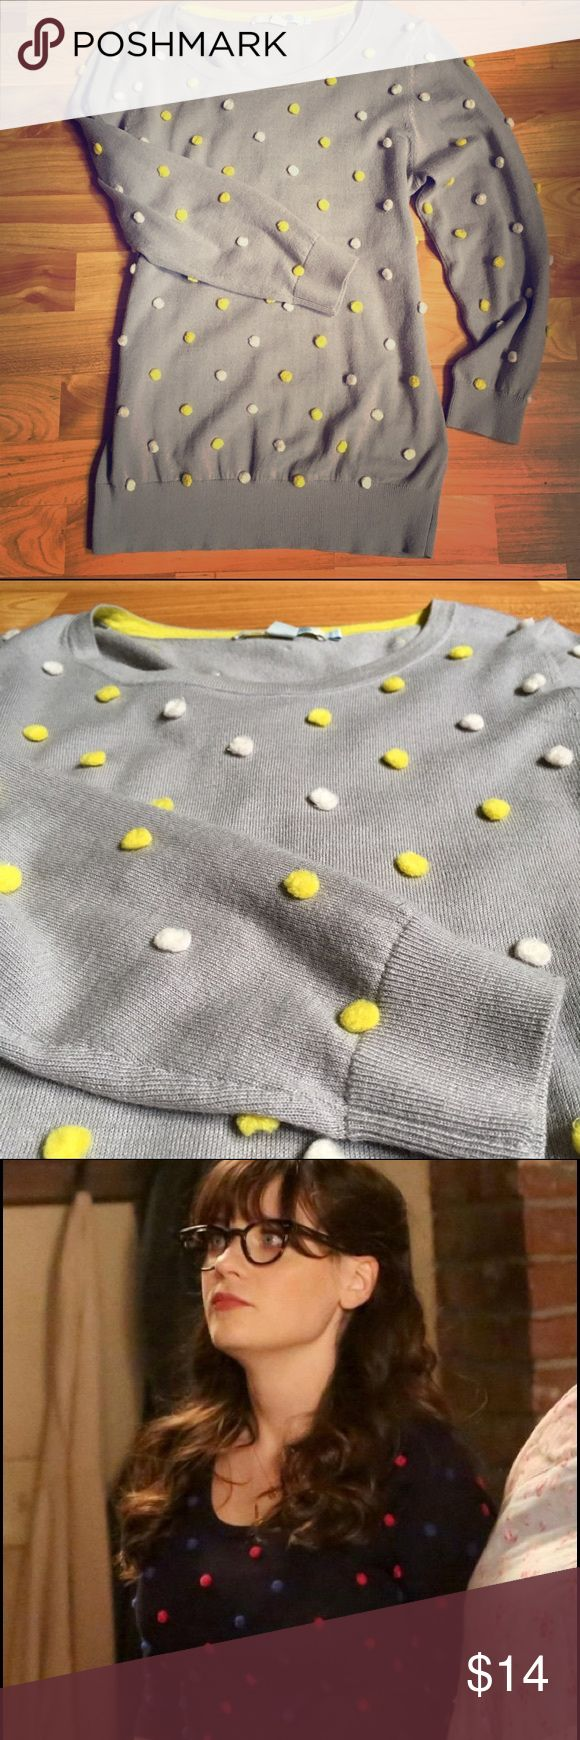 Boden Pom Pom Sweater As Seen On New Girl This Boden Pom Pom jumper is moth grey and features two-tone pom poms (yellow and white) to brighten up a casual outfit. 54% wool 46% cotton. Tag is size 4, but I'm usually a 6-8 and it fits me comfortably. I'm listing as a small. There is a small snag/hole at the bottom of the back, noted in pic #4. Not noticeable when on. Zooey Deschanel wore the same sweater in a different color in an episode of New Girl in March '16 Boden Sweaters Crew & Scoop…